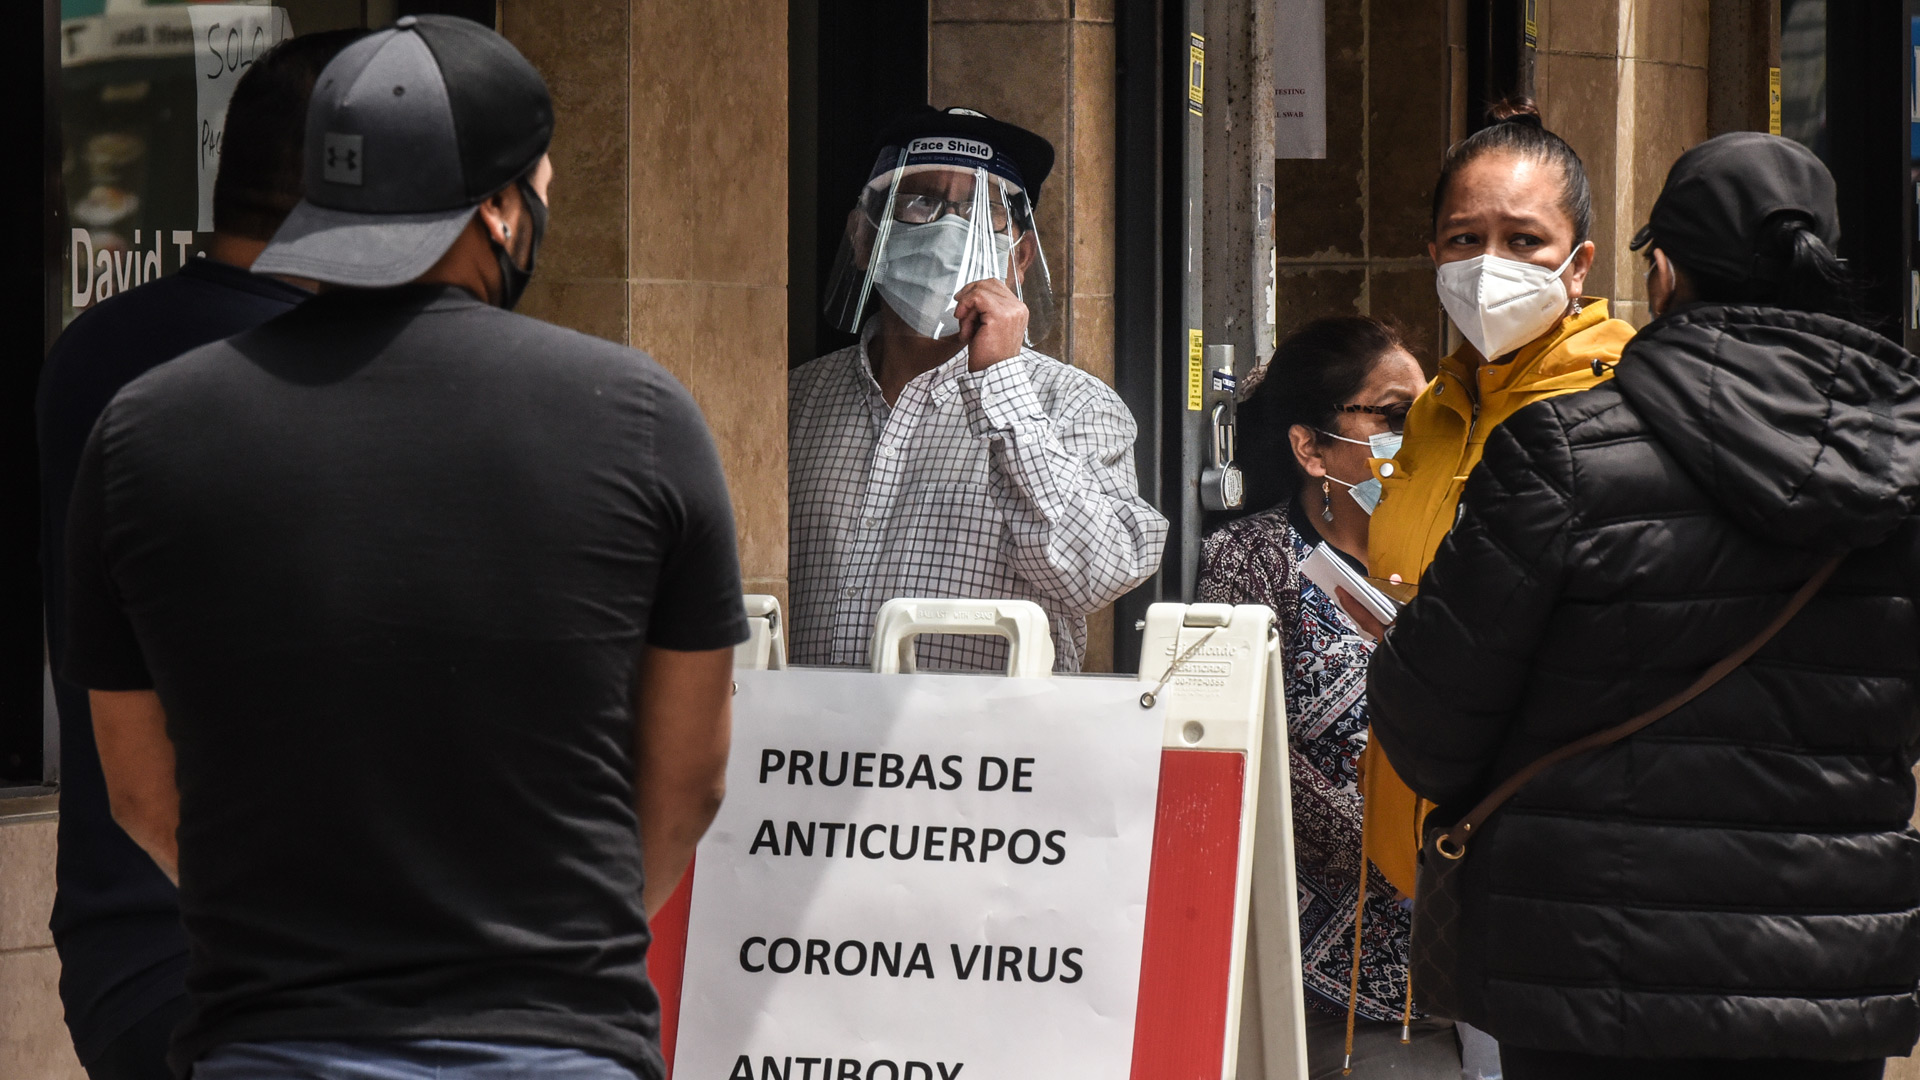 People wait to get an antibody test for COVID-19 on May 18, 2020 in the Queens borough in New York City. (Photo by Stephanie Keith/Getty Images)